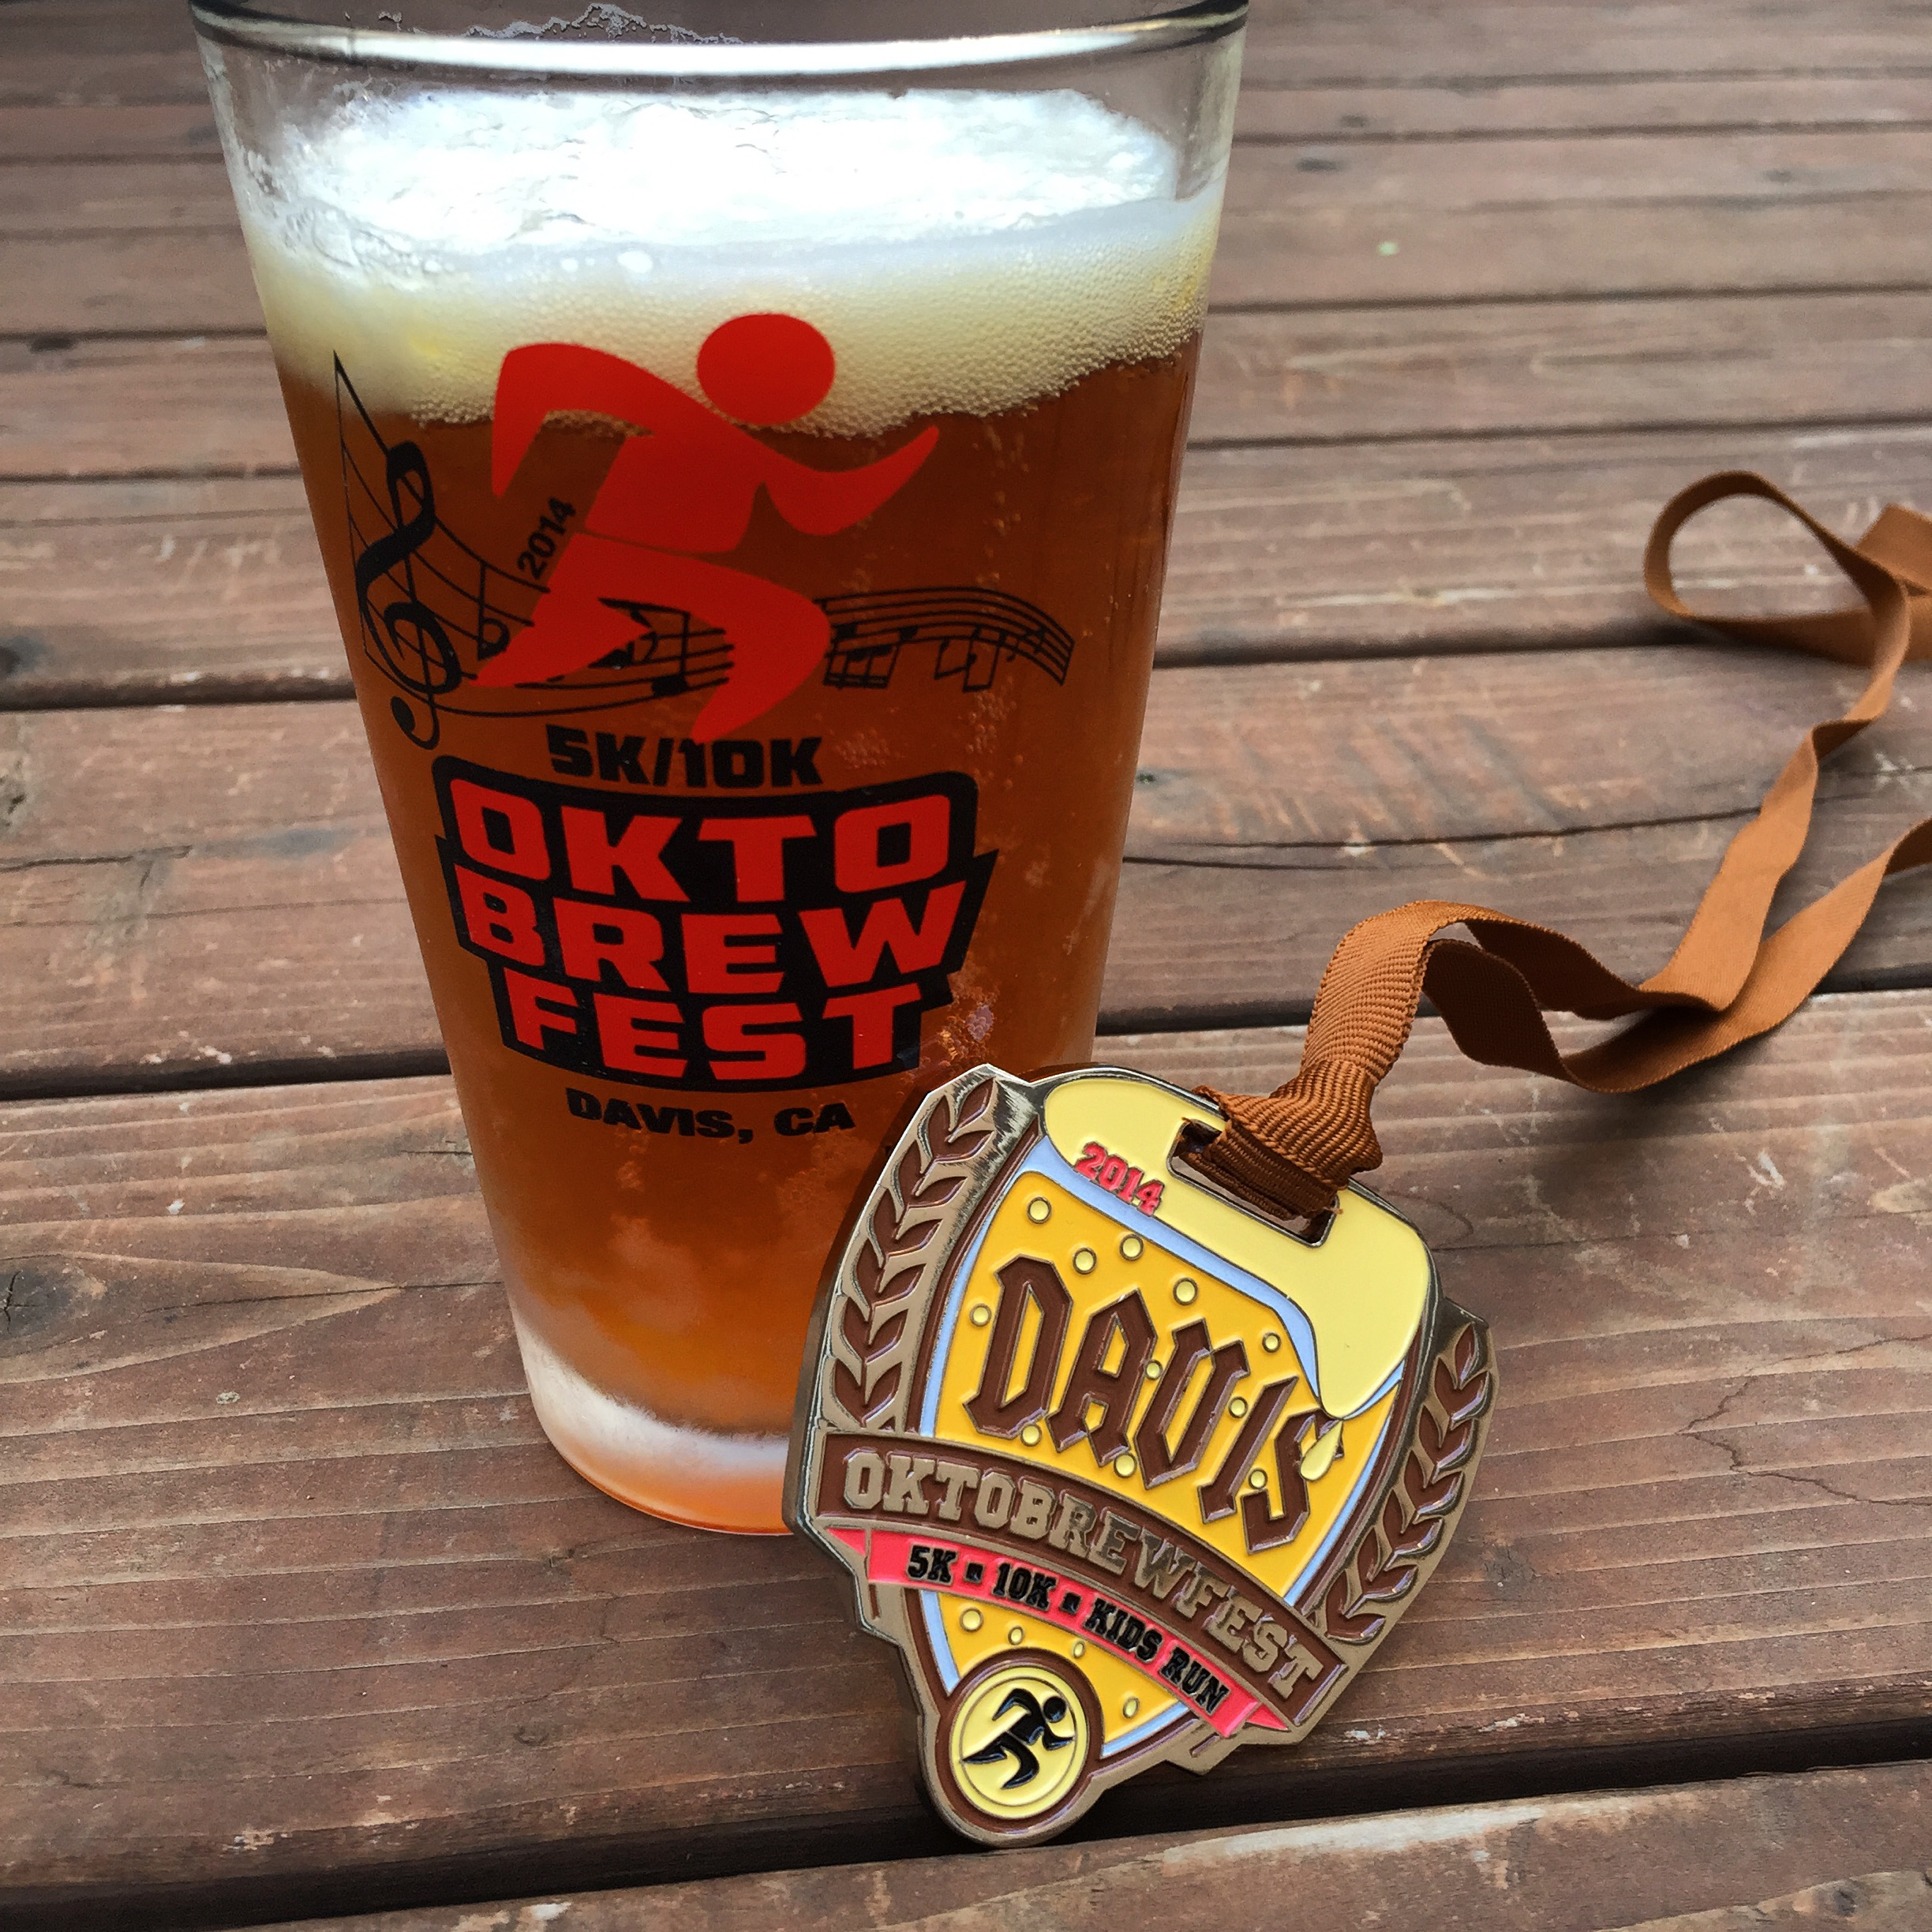 Bottle opener finisher's medal and award winner pint glass